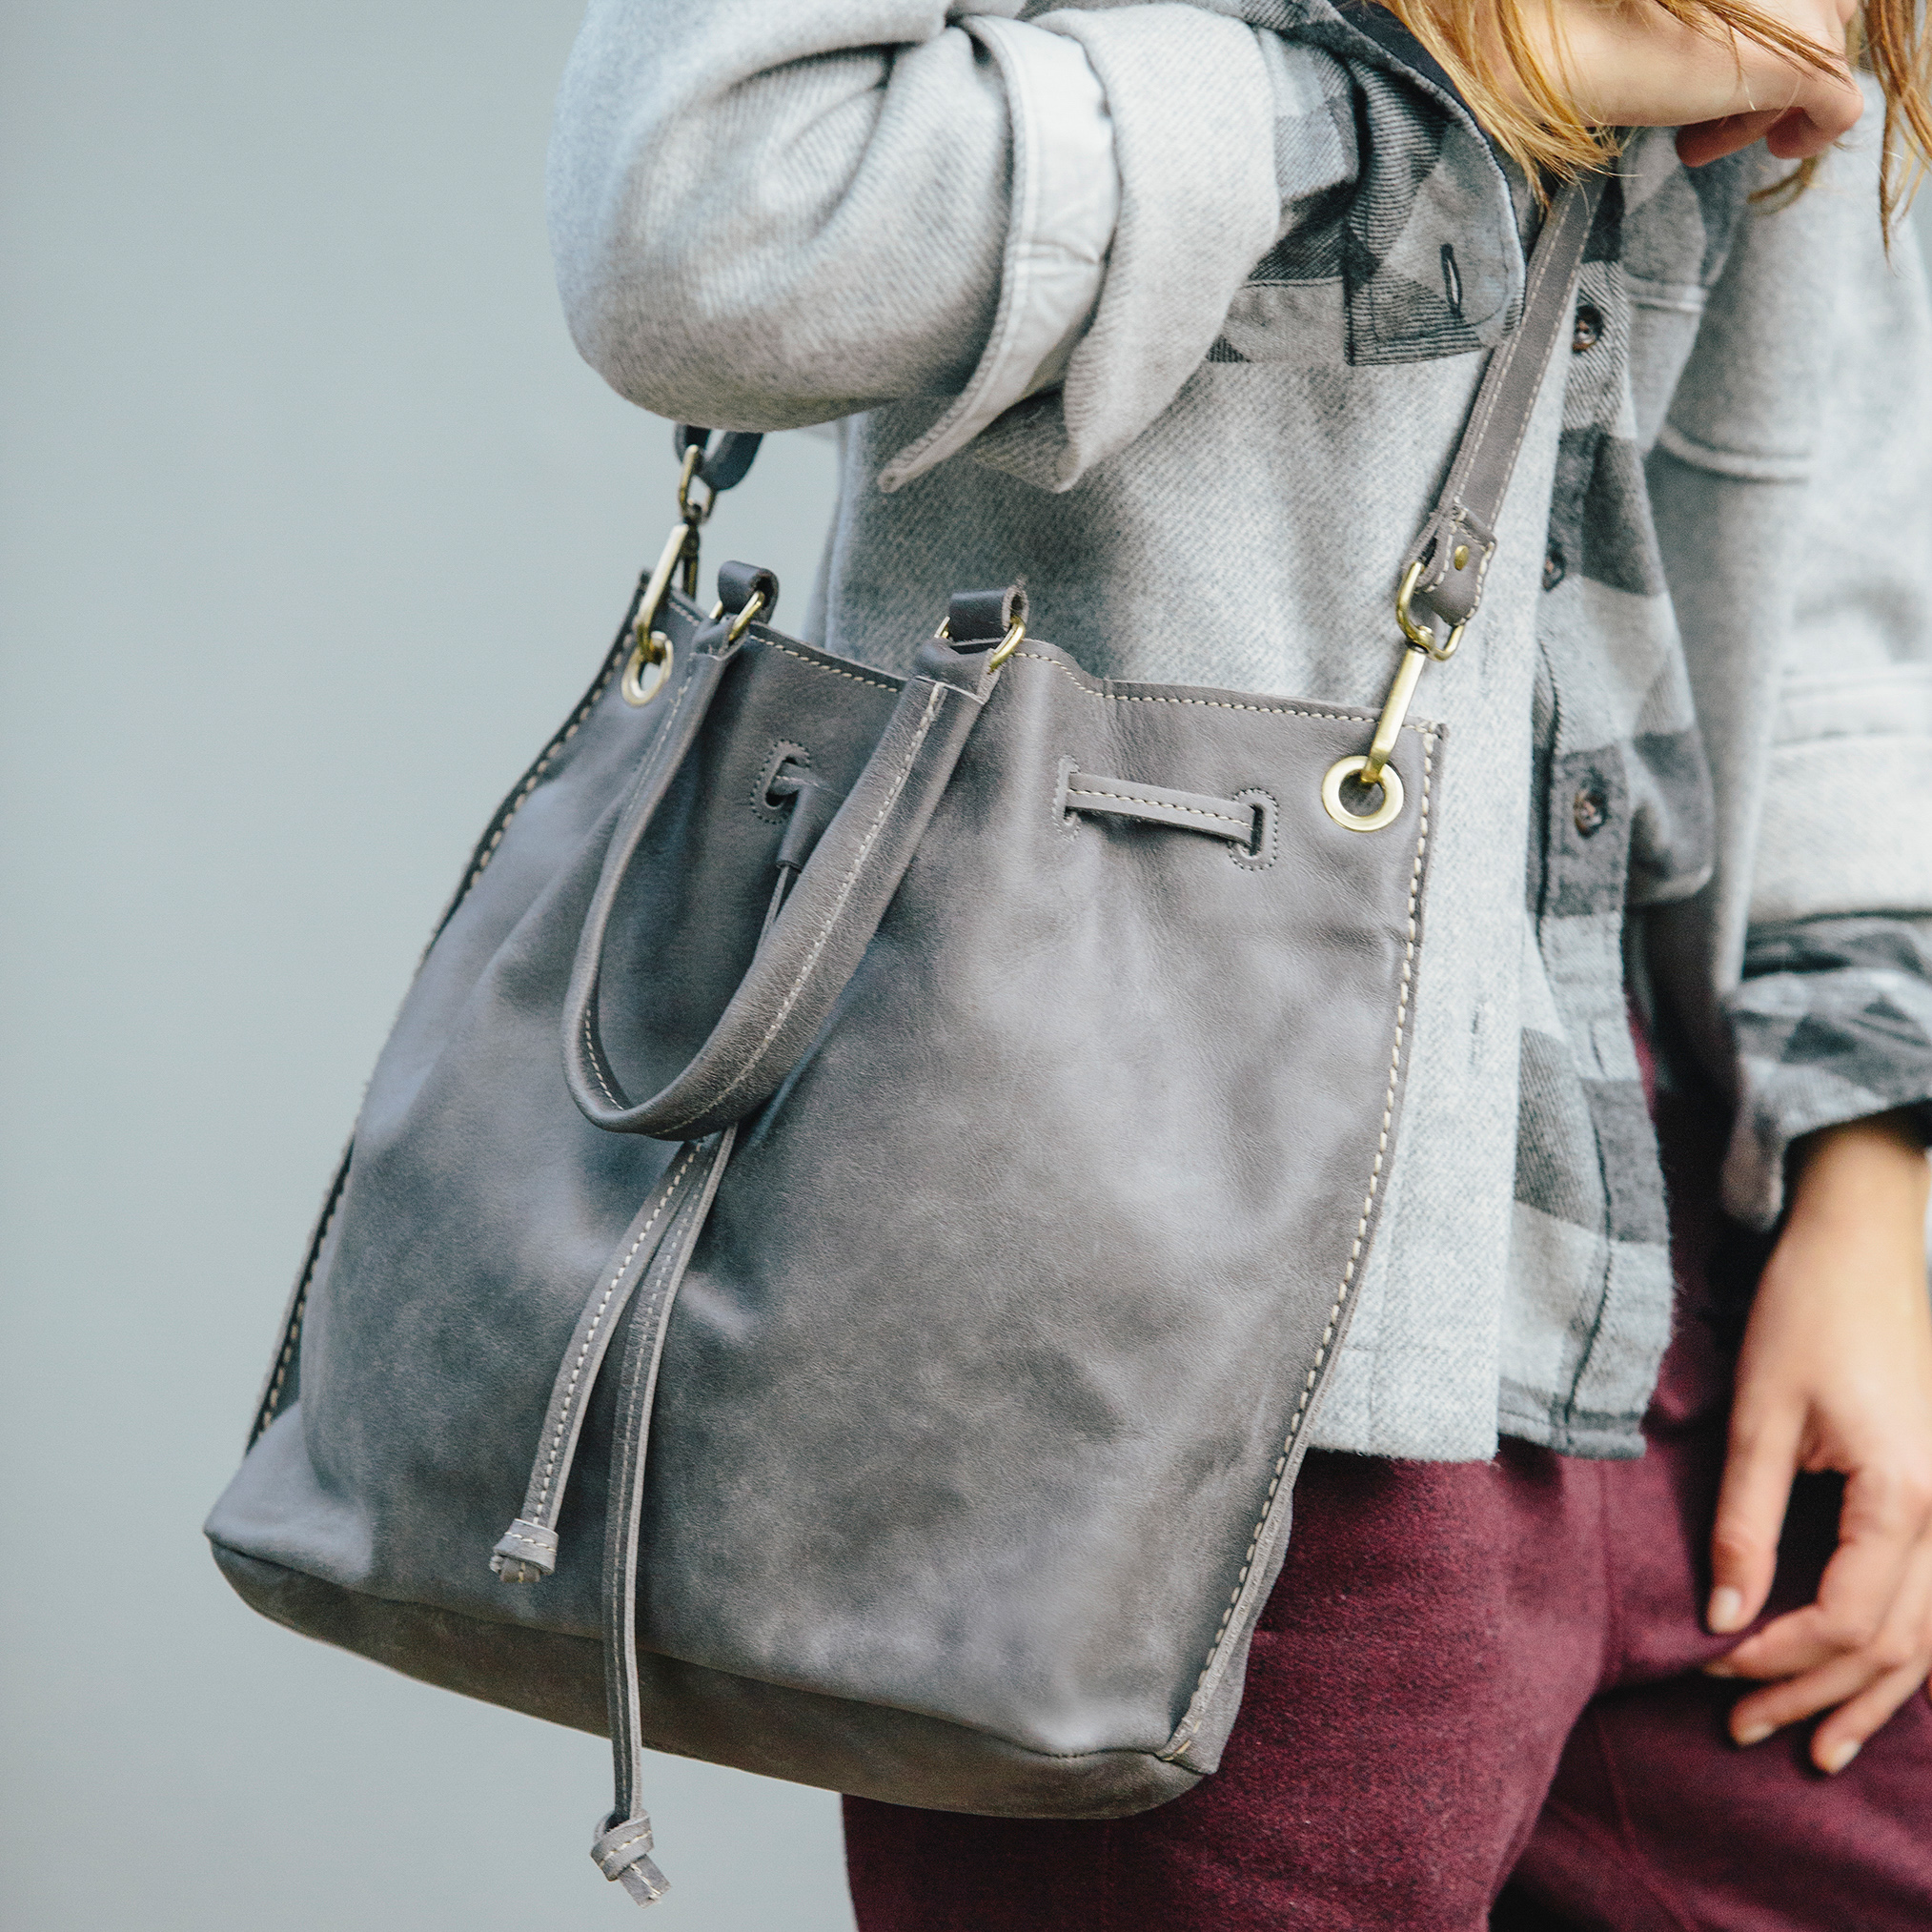 Roots-Women Shoulder Bags-Shop The Look: Cabin Comfort, City Style-G